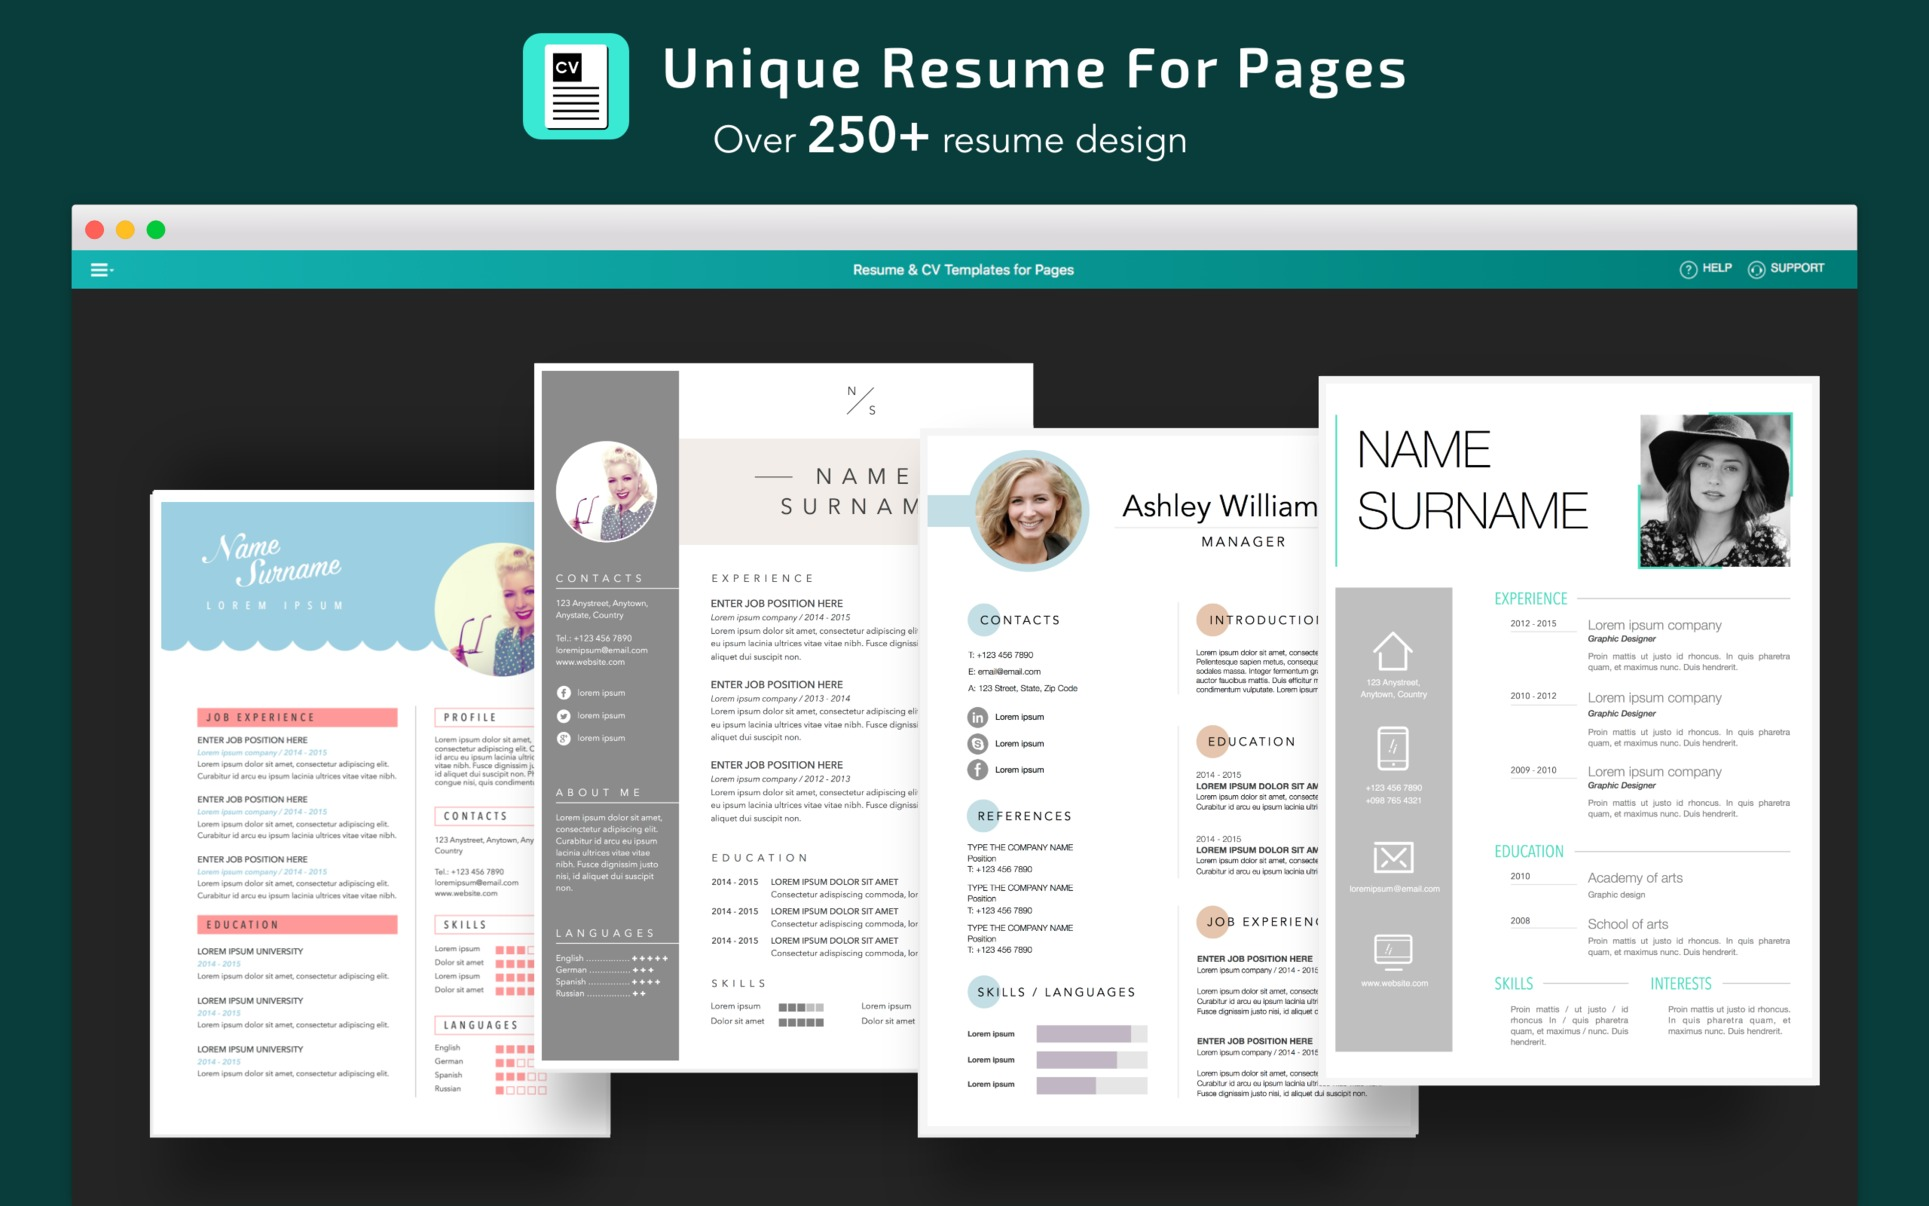 Screenshot 5 for Resume, CV Templates for Pages